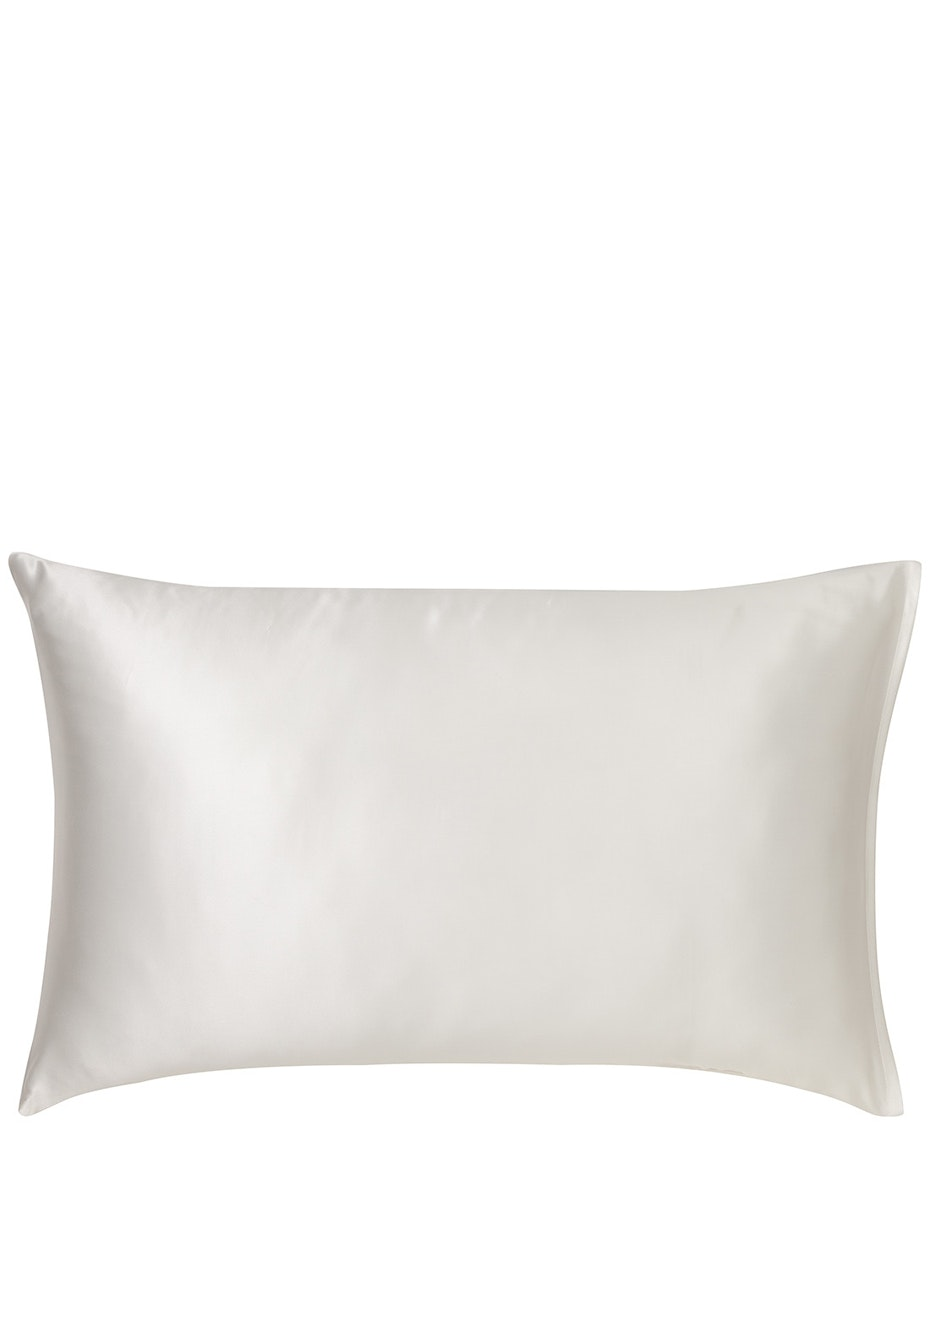 Canningvale Silk Pillowcase Set of 2